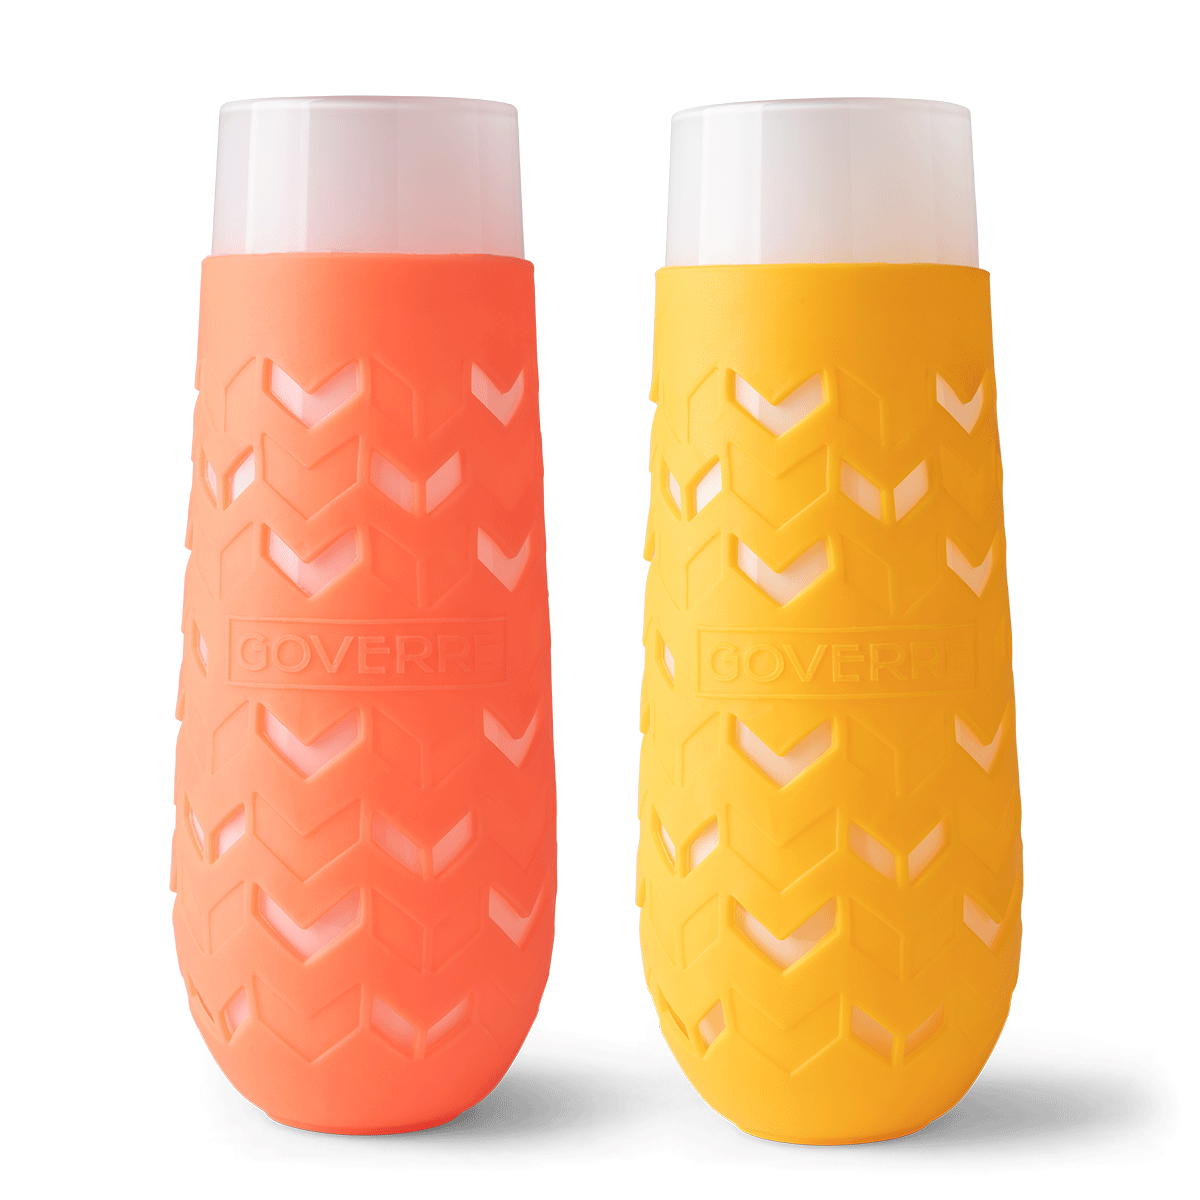 "Goverre is a glass, portable, stemless champagne flute with a silicone sleeve. This set includes 1 coral and 1 mango colored sleeved glassses. Durable—thicker (.25"") than a typical champagne flute Preserves taste and integrity of your bubbly."